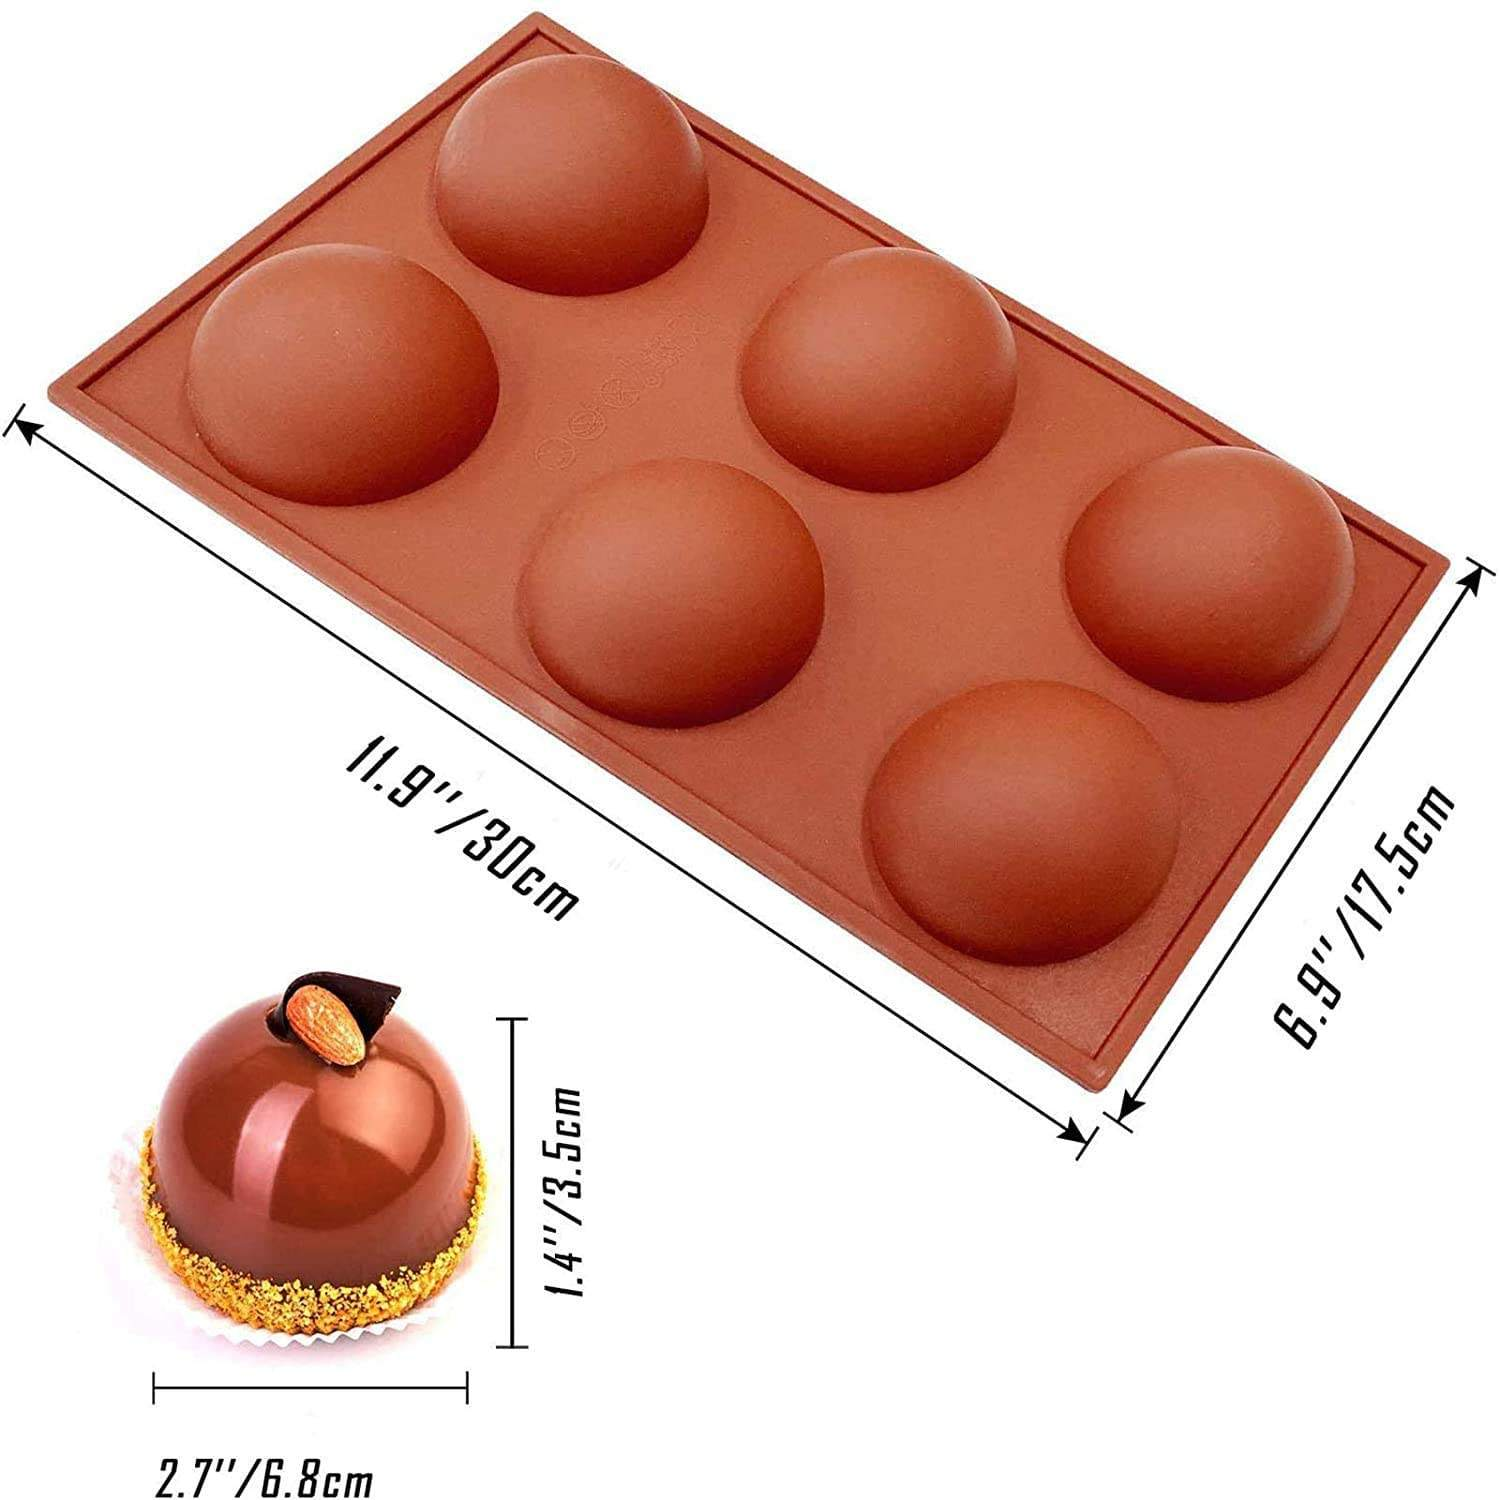 2020 latest items chocolate cake mould baking tray perforated confeitaria steaming cake food tool silicone molds for concrete